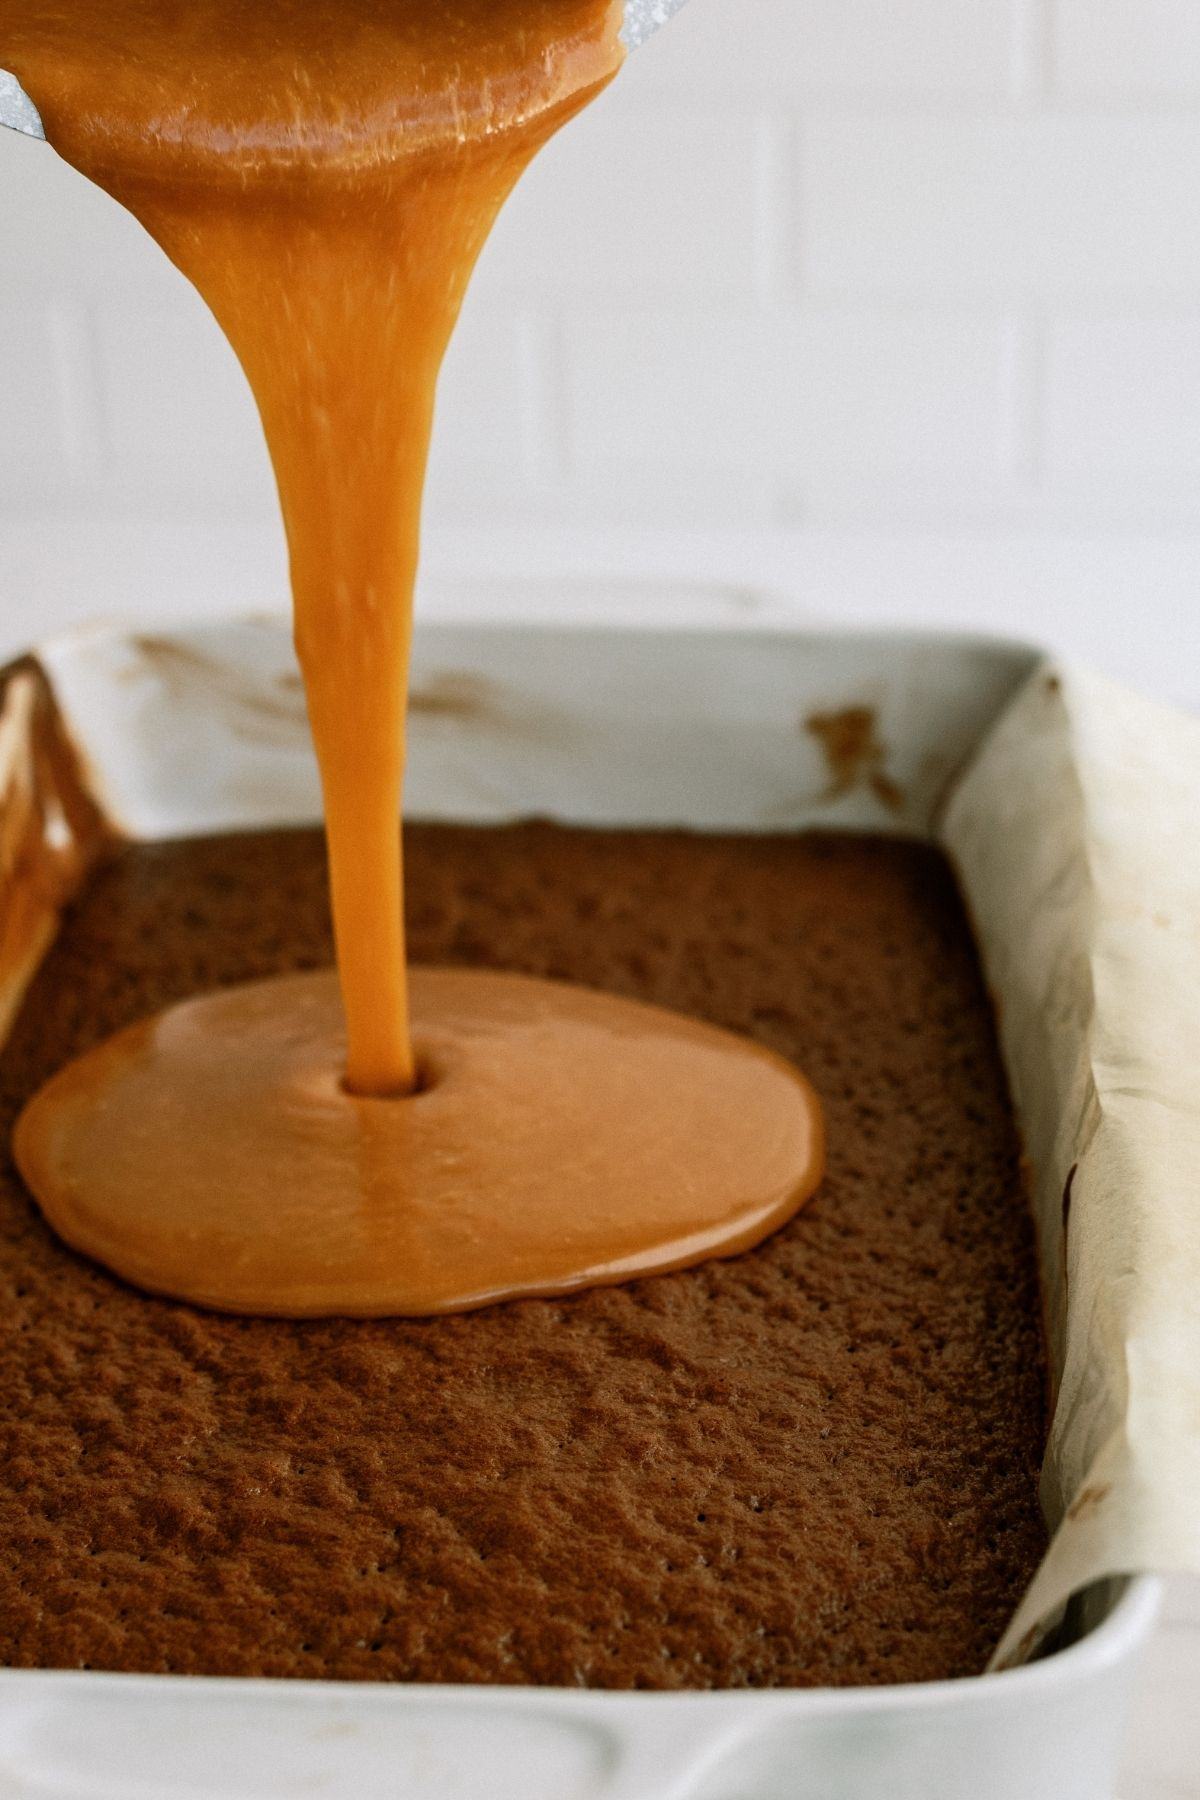 pouring caramel sauce on baked layer of cake